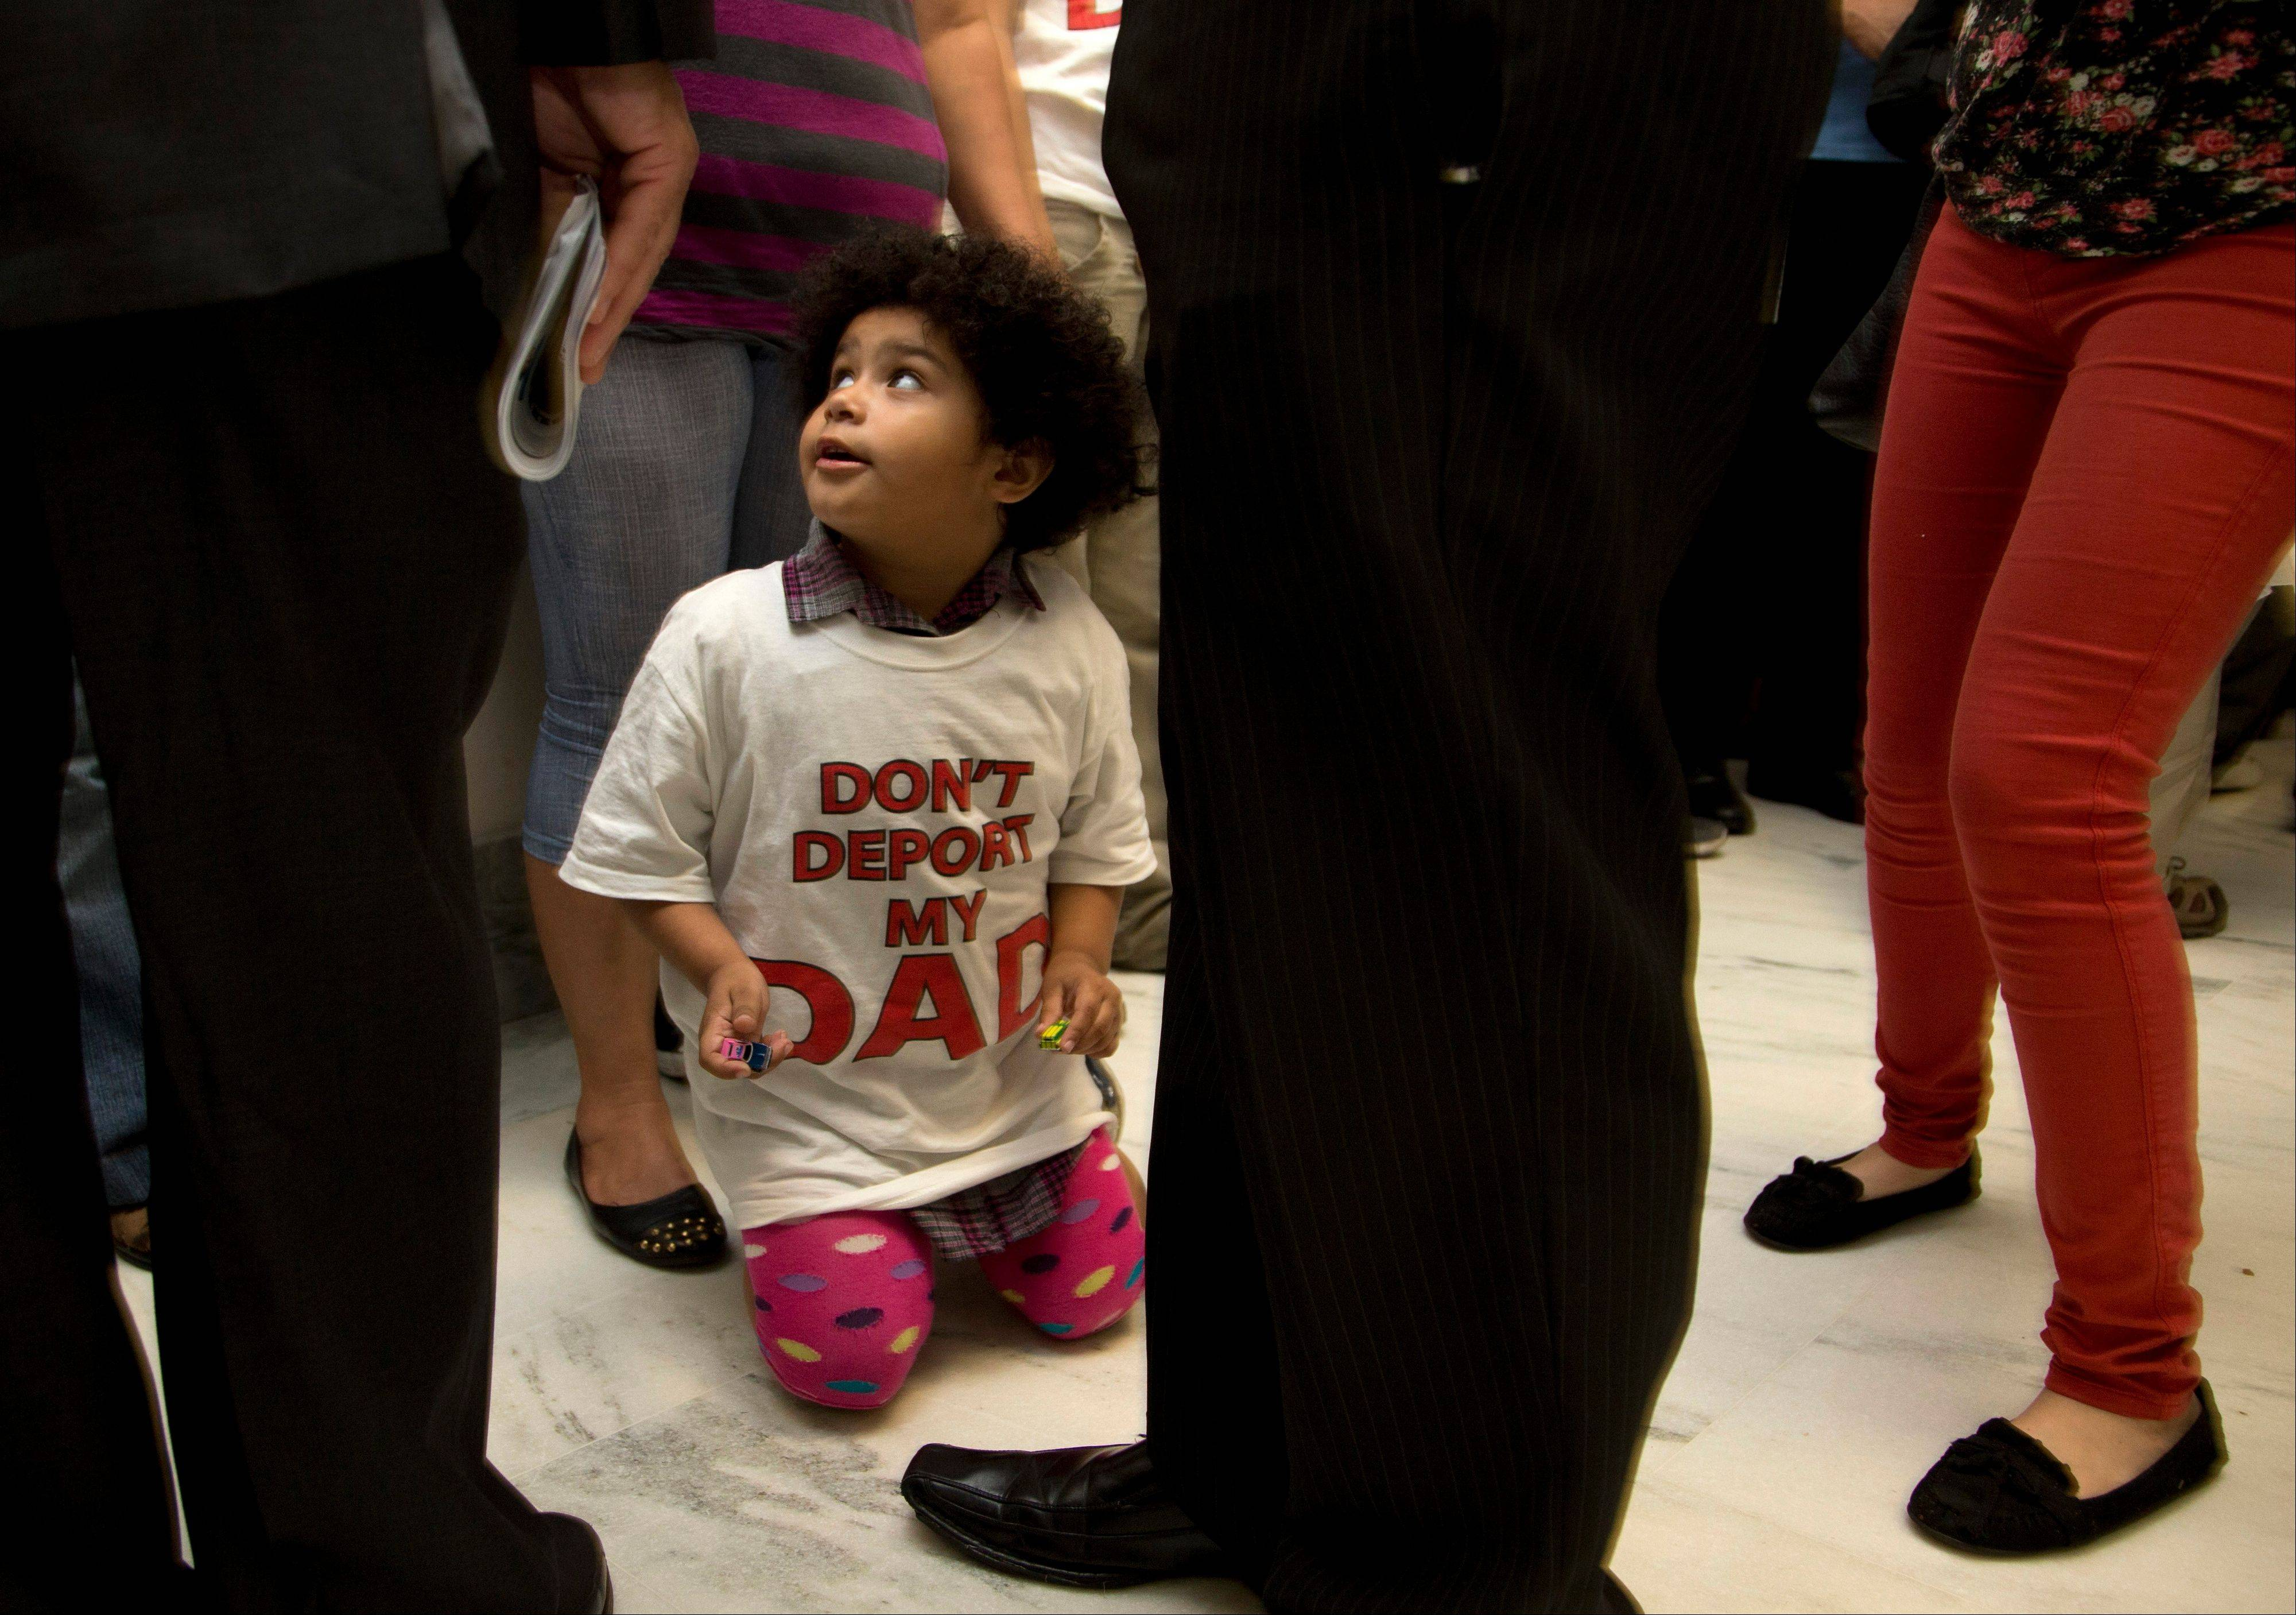 Jackelin Alfaro, 4, in a T-shirt that reads �Don�t Deport my Dad� sits in the hall with family members outside the House Judiciary Committee hearing on Capitol Hill in Washington, Tuesday, June 18, 2013. The committee hearing will discuss the Strengthen and Fortify Enforcement Act. The committee in the Republican-led House is preparing to cast its first votes on immigration this year, on a tough enforcement-focused measure that Democrats and immigrant groups are protesting loudly.